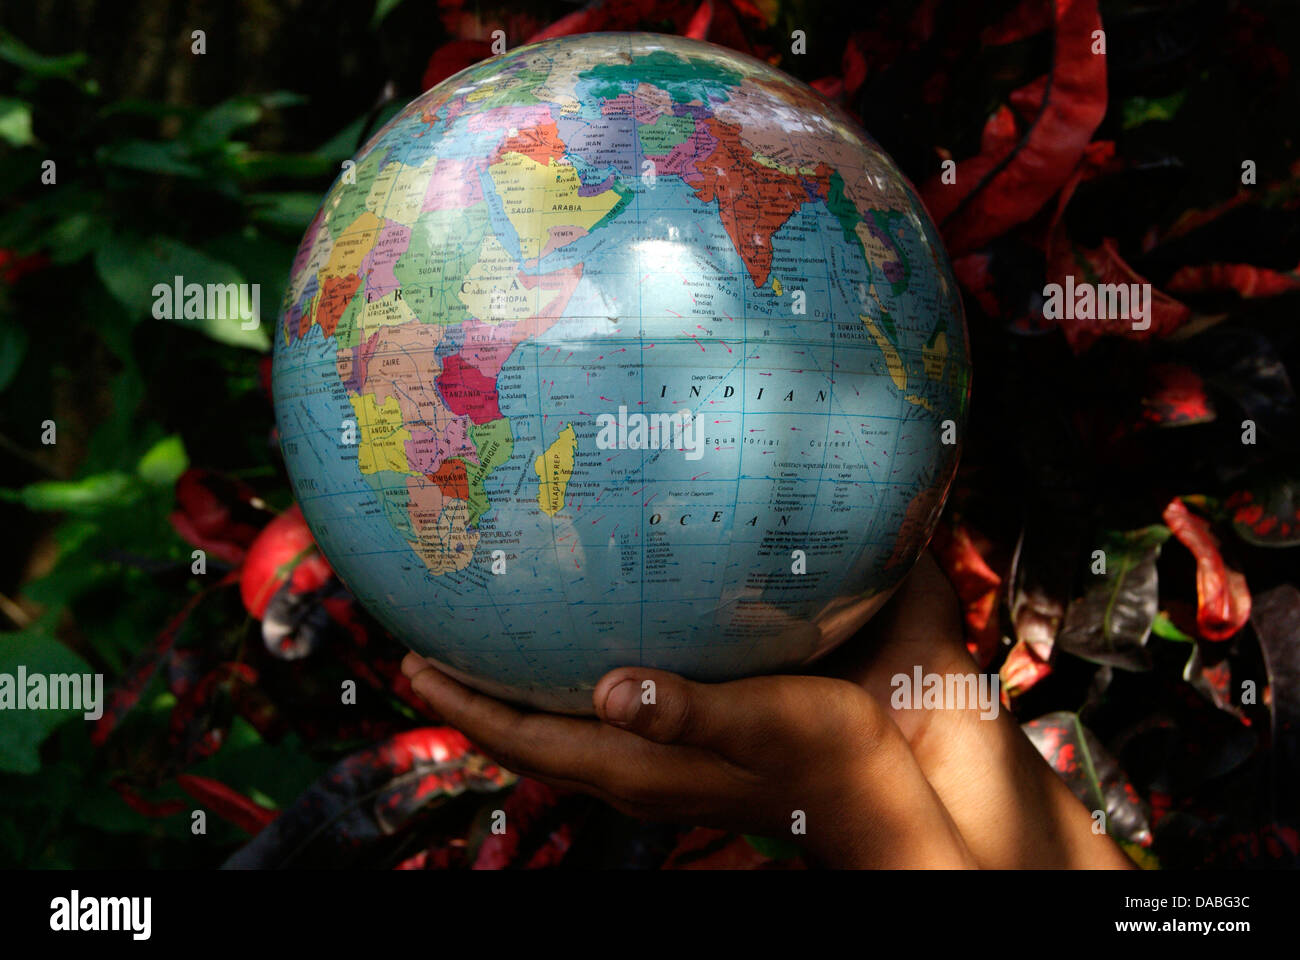 Globe Earth Holding on Hand - Stock Image